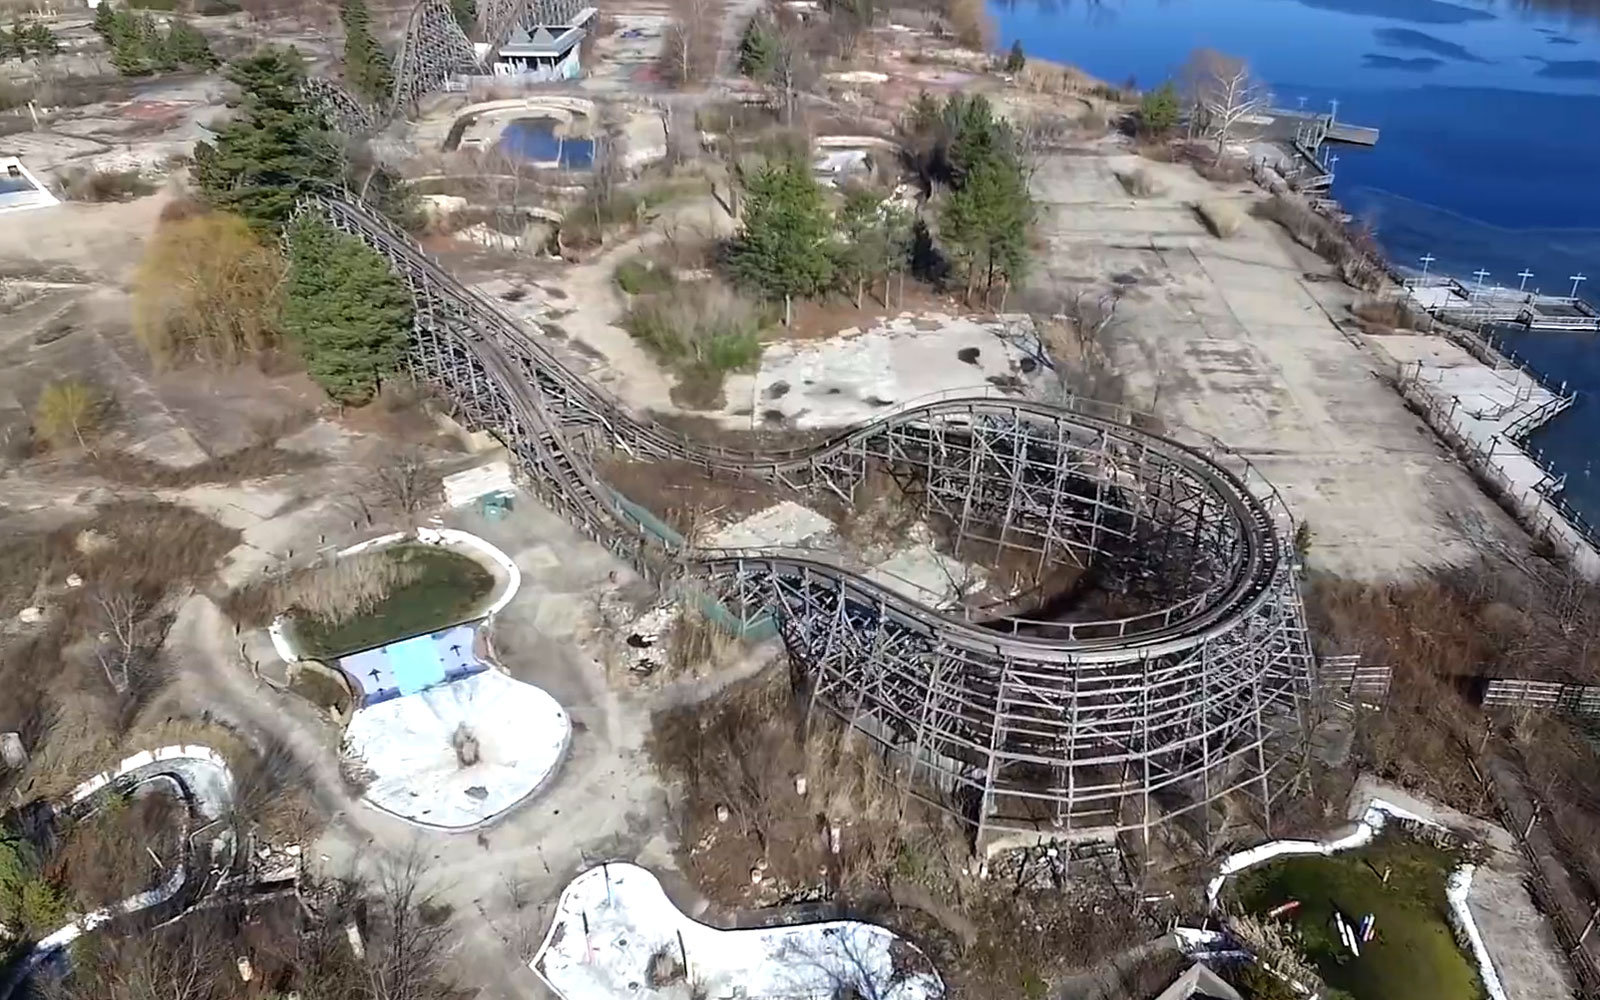 Tour The Abandoned Geauga Lake Amusement Park Via Drone